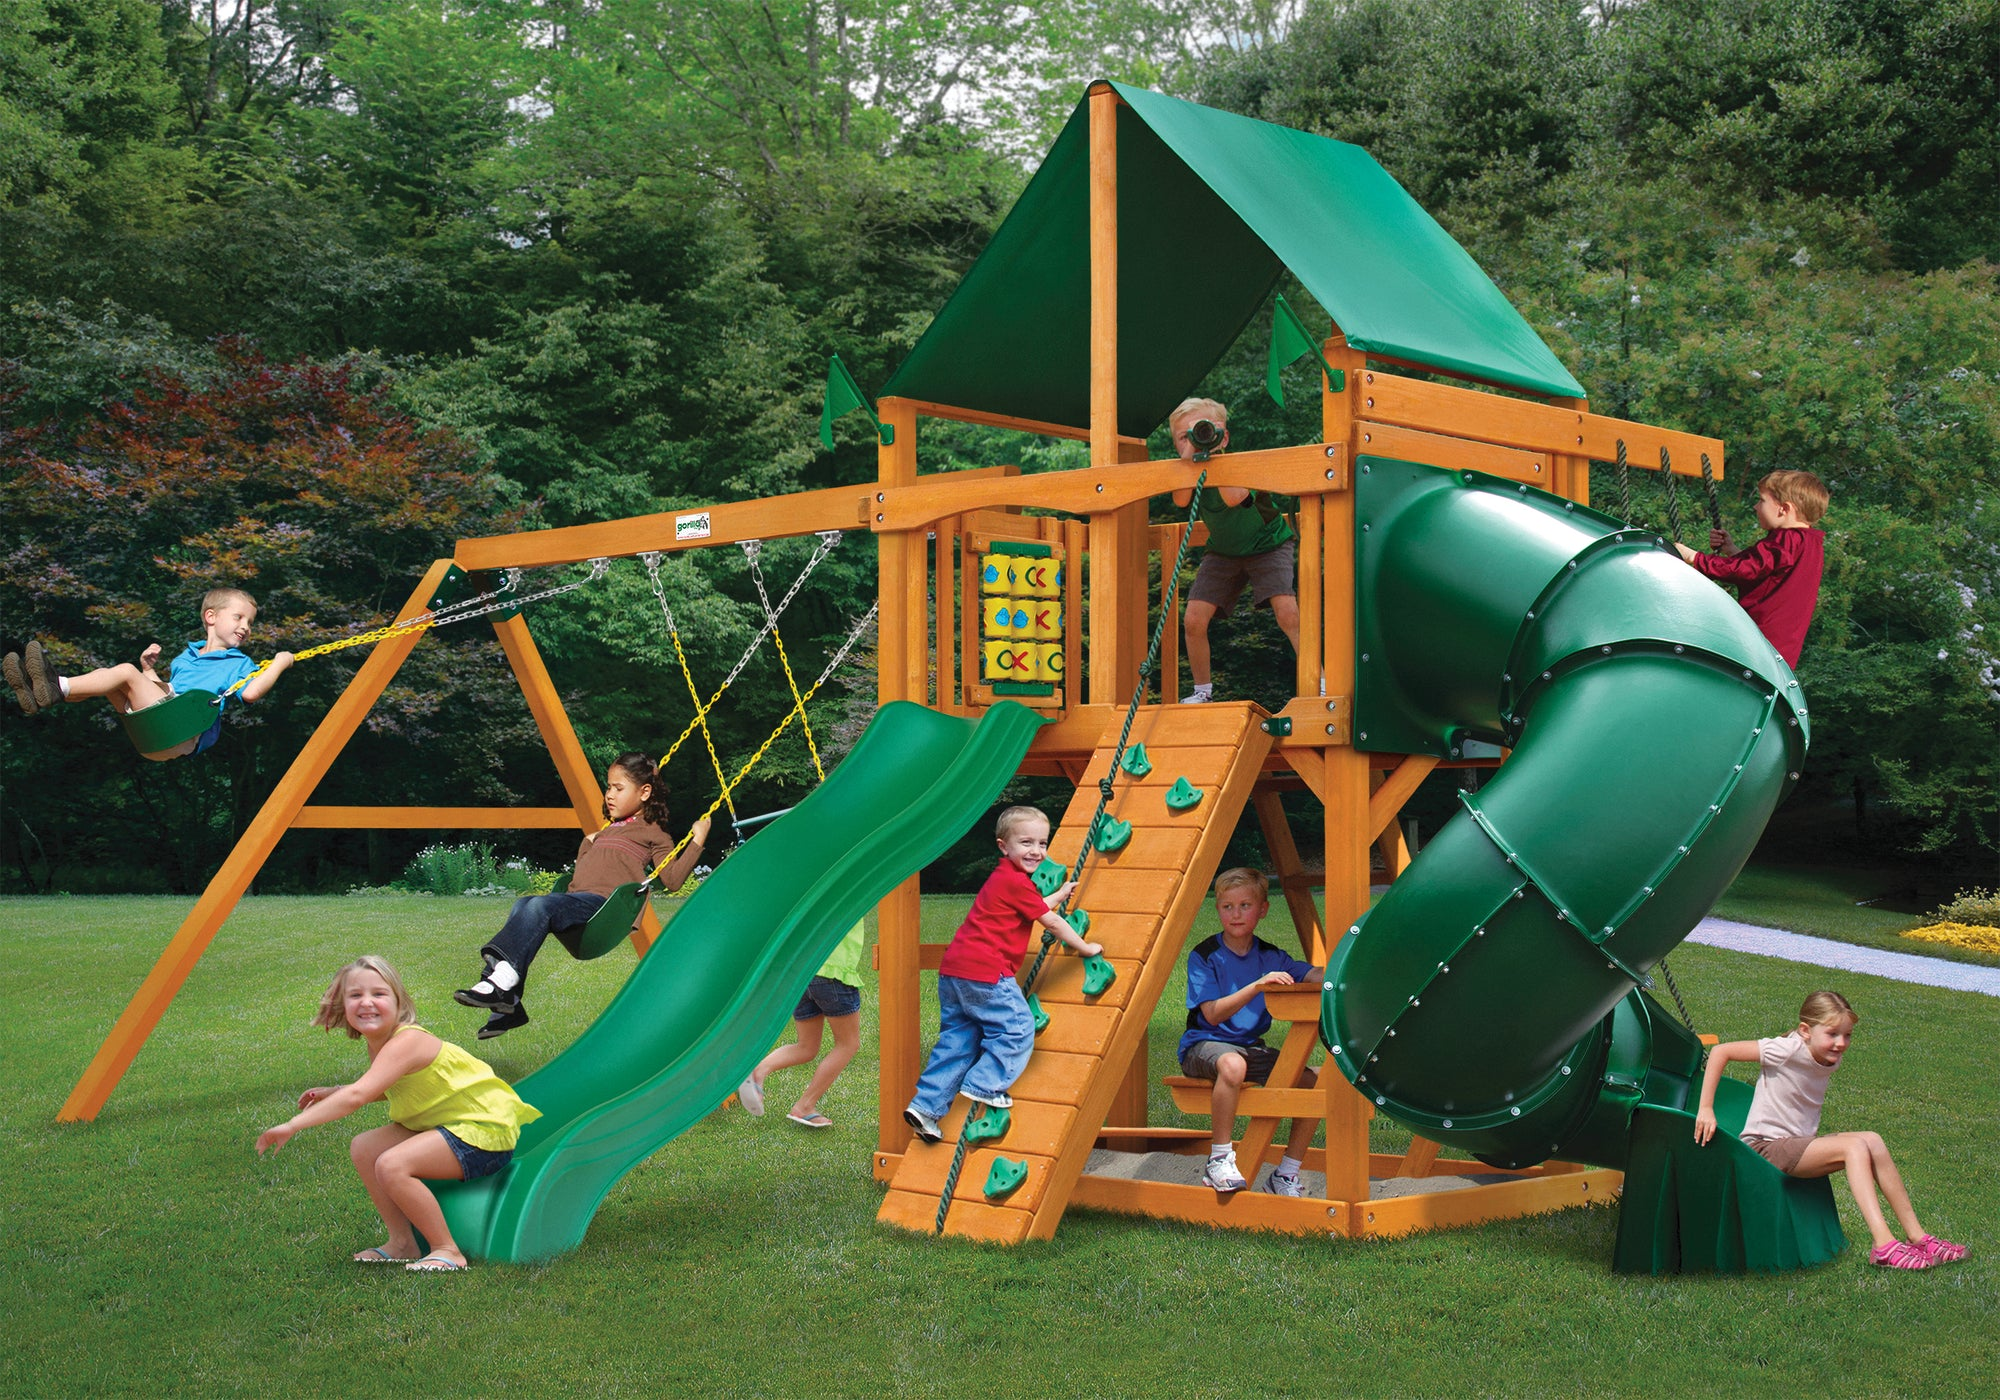 Gorilla Playsets Mountaineer Deluxe Green Vinyl Swing Set - Swing Set Paradise